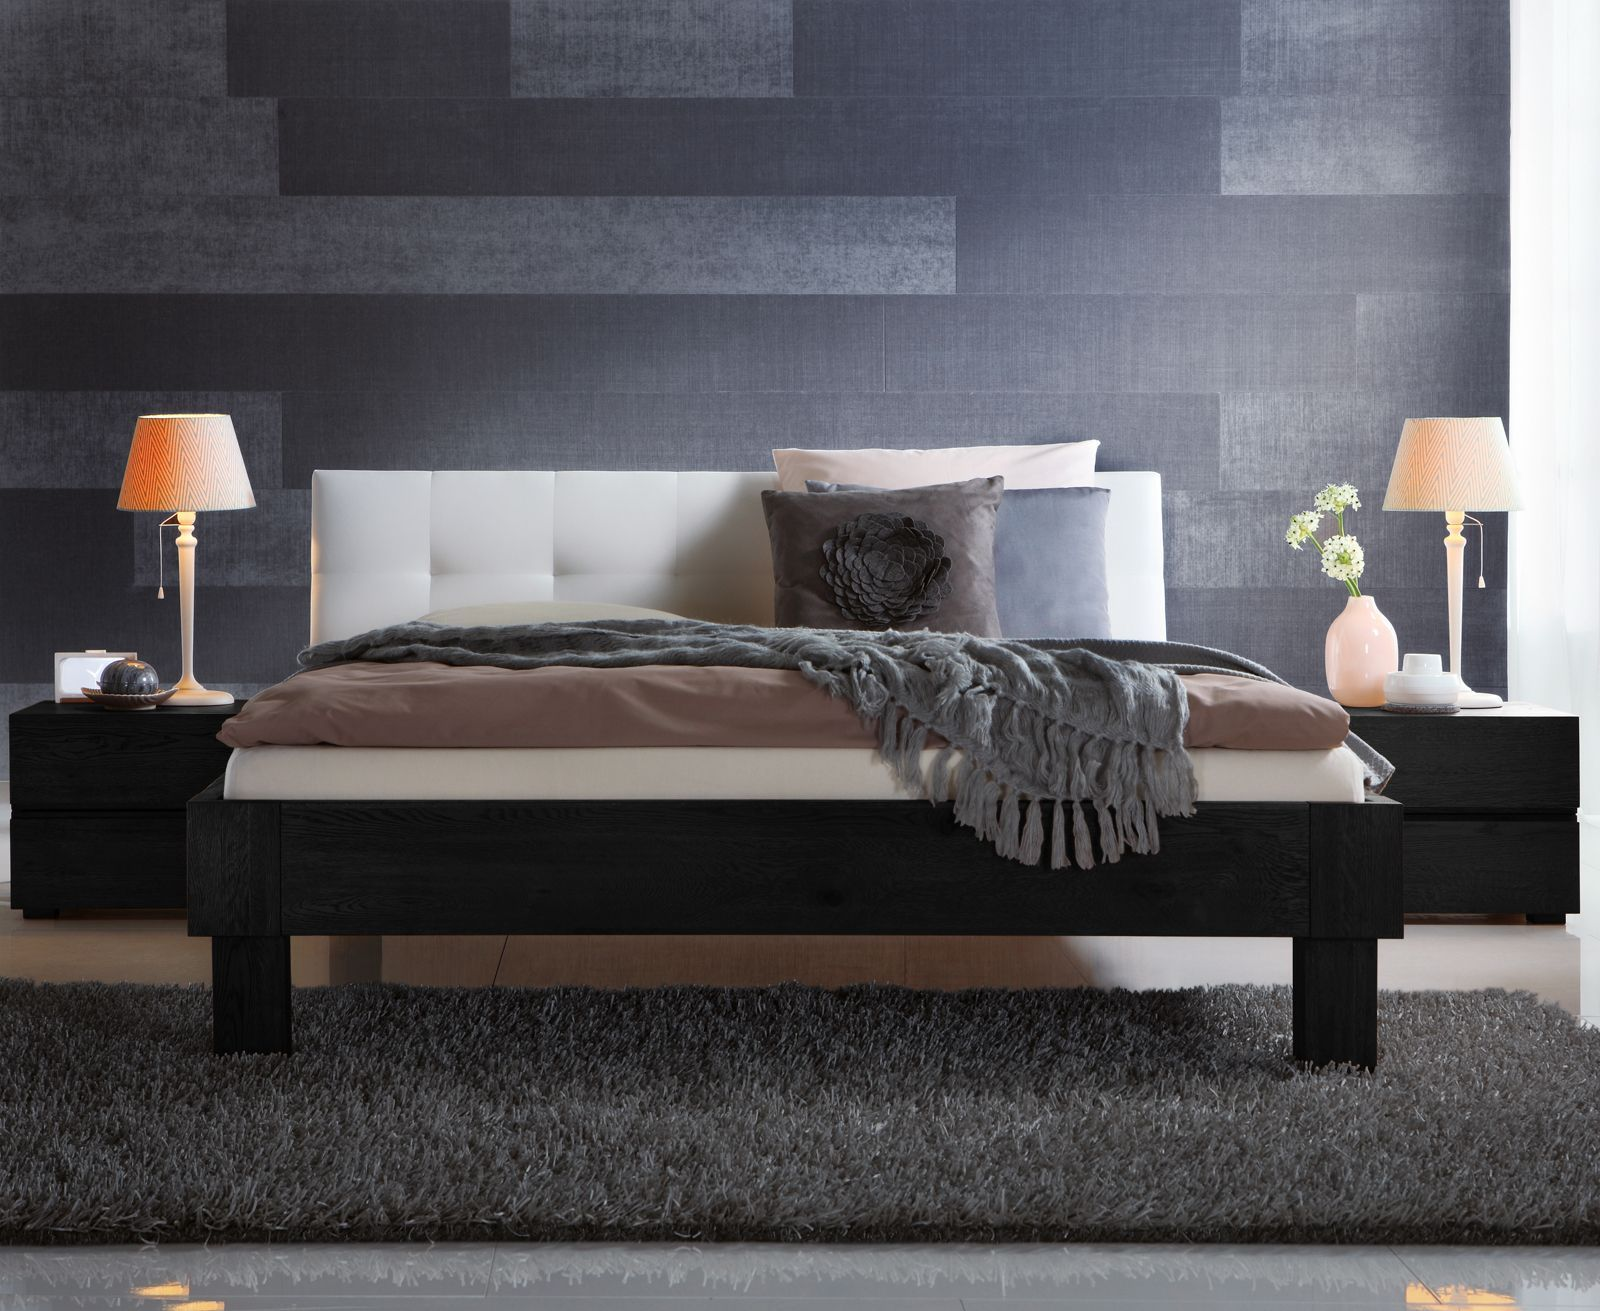 massivholzbett aus eiche mit wei em kopfteil faro. Black Bedroom Furniture Sets. Home Design Ideas